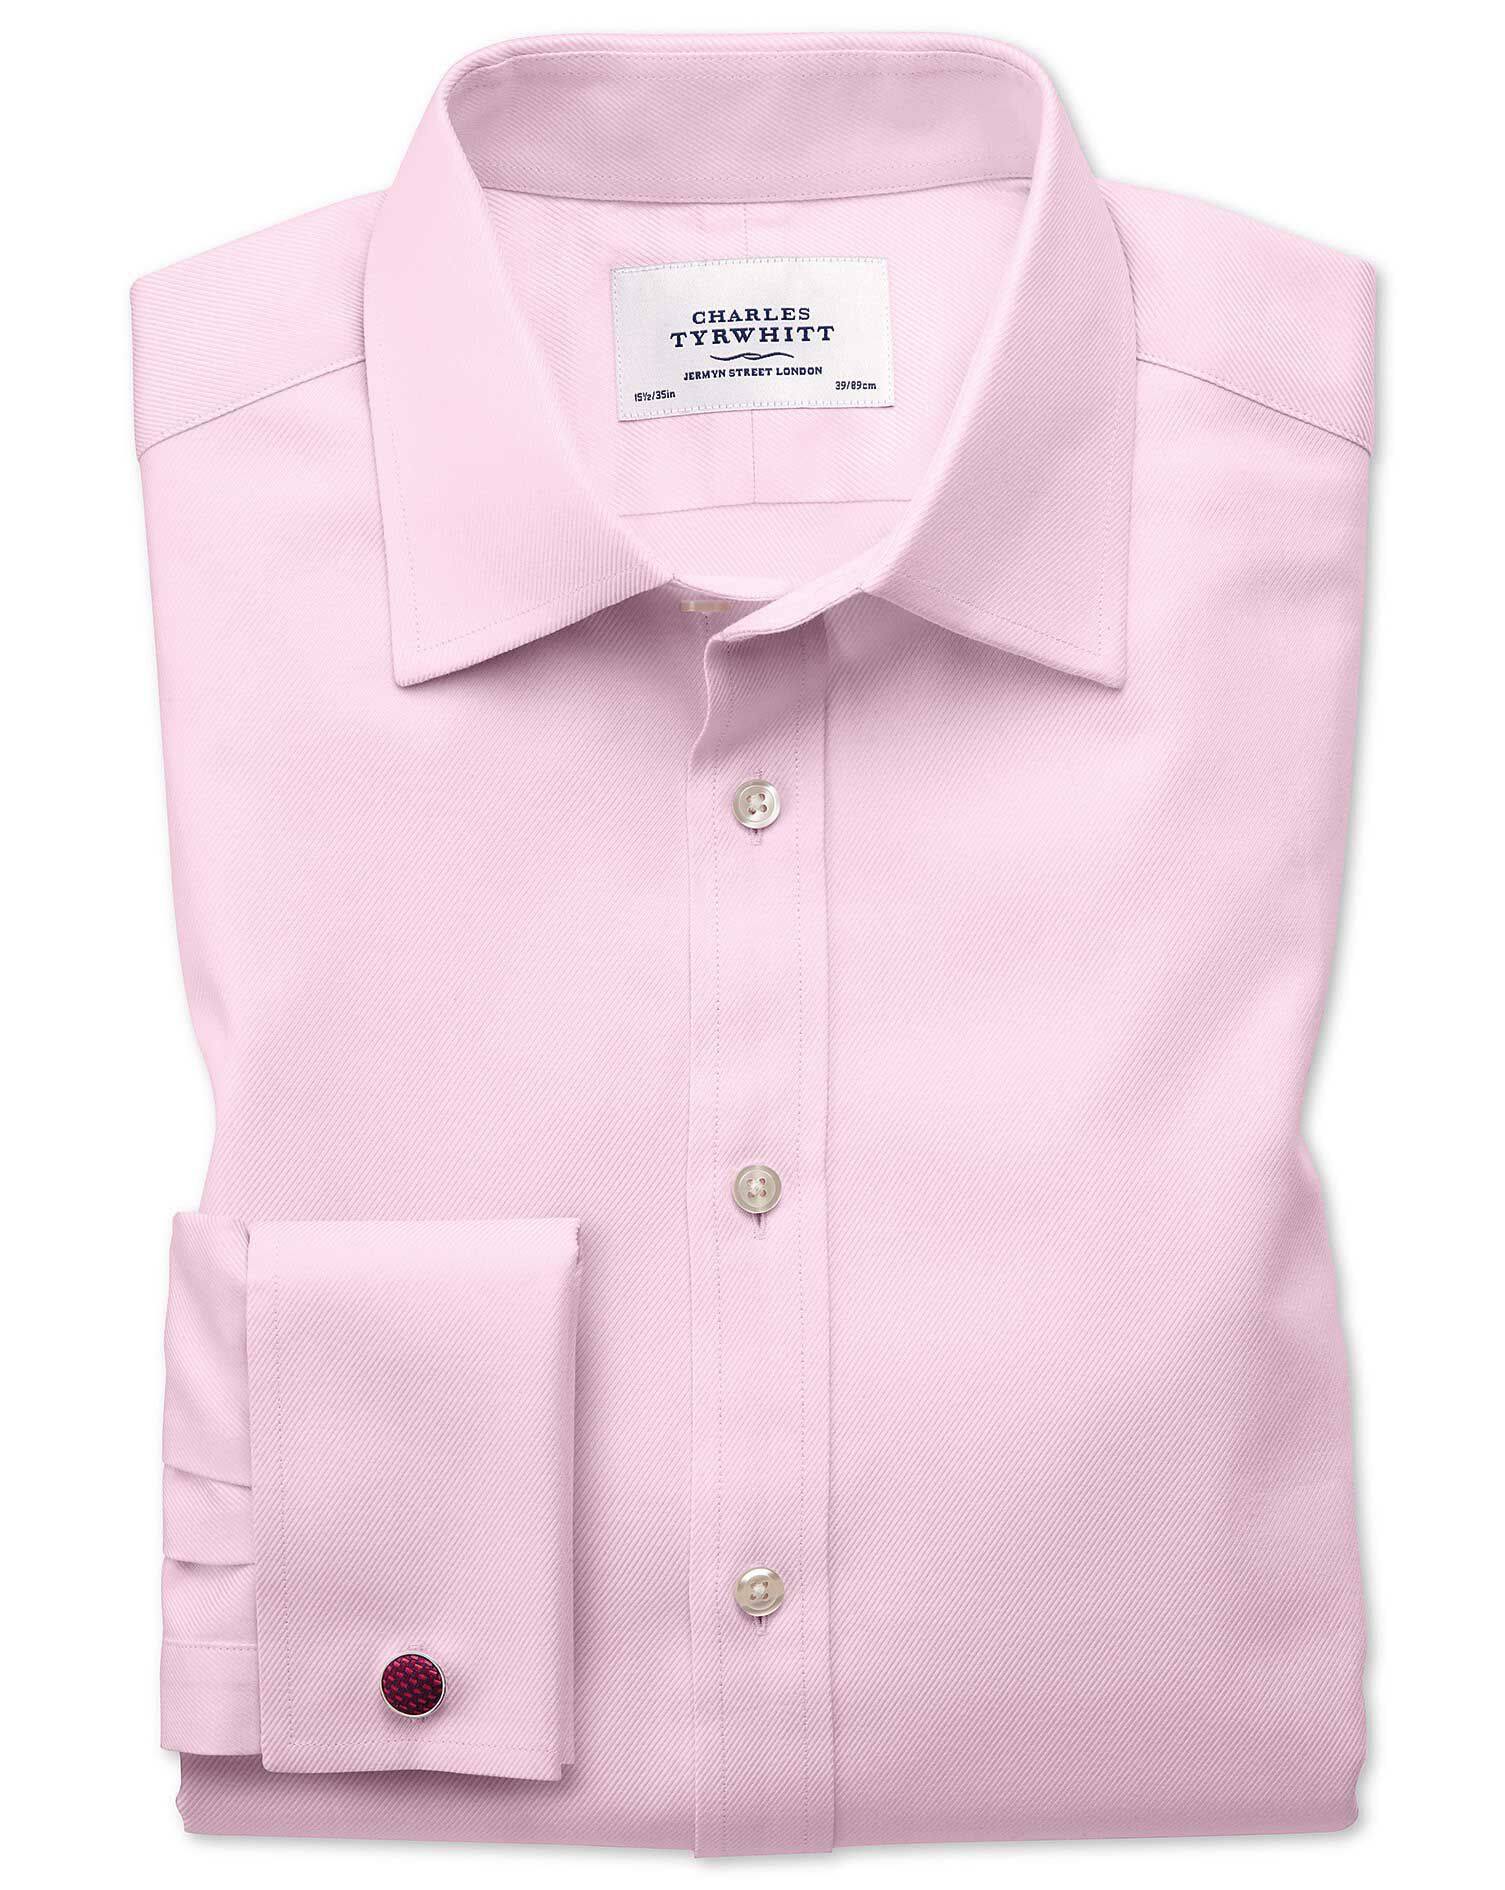 Extra Slim Fit Egyptian Cotton Cavalry Twill Light Pink Formal Shirt Single Cuff Size 16.5/34 by Cha